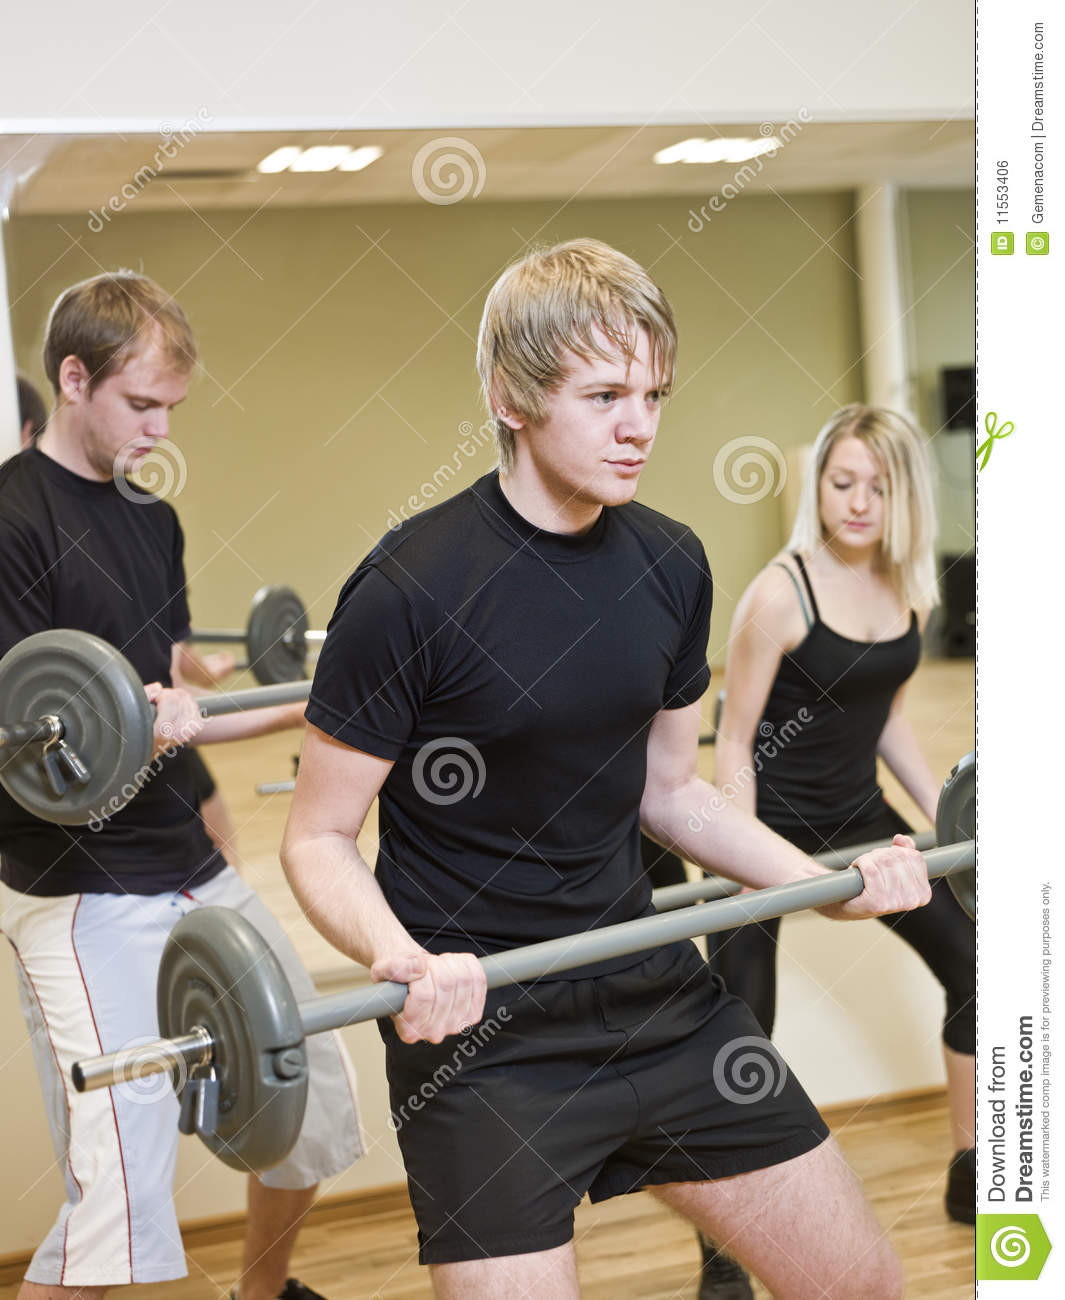 group of people lifting weights royalty free stock image